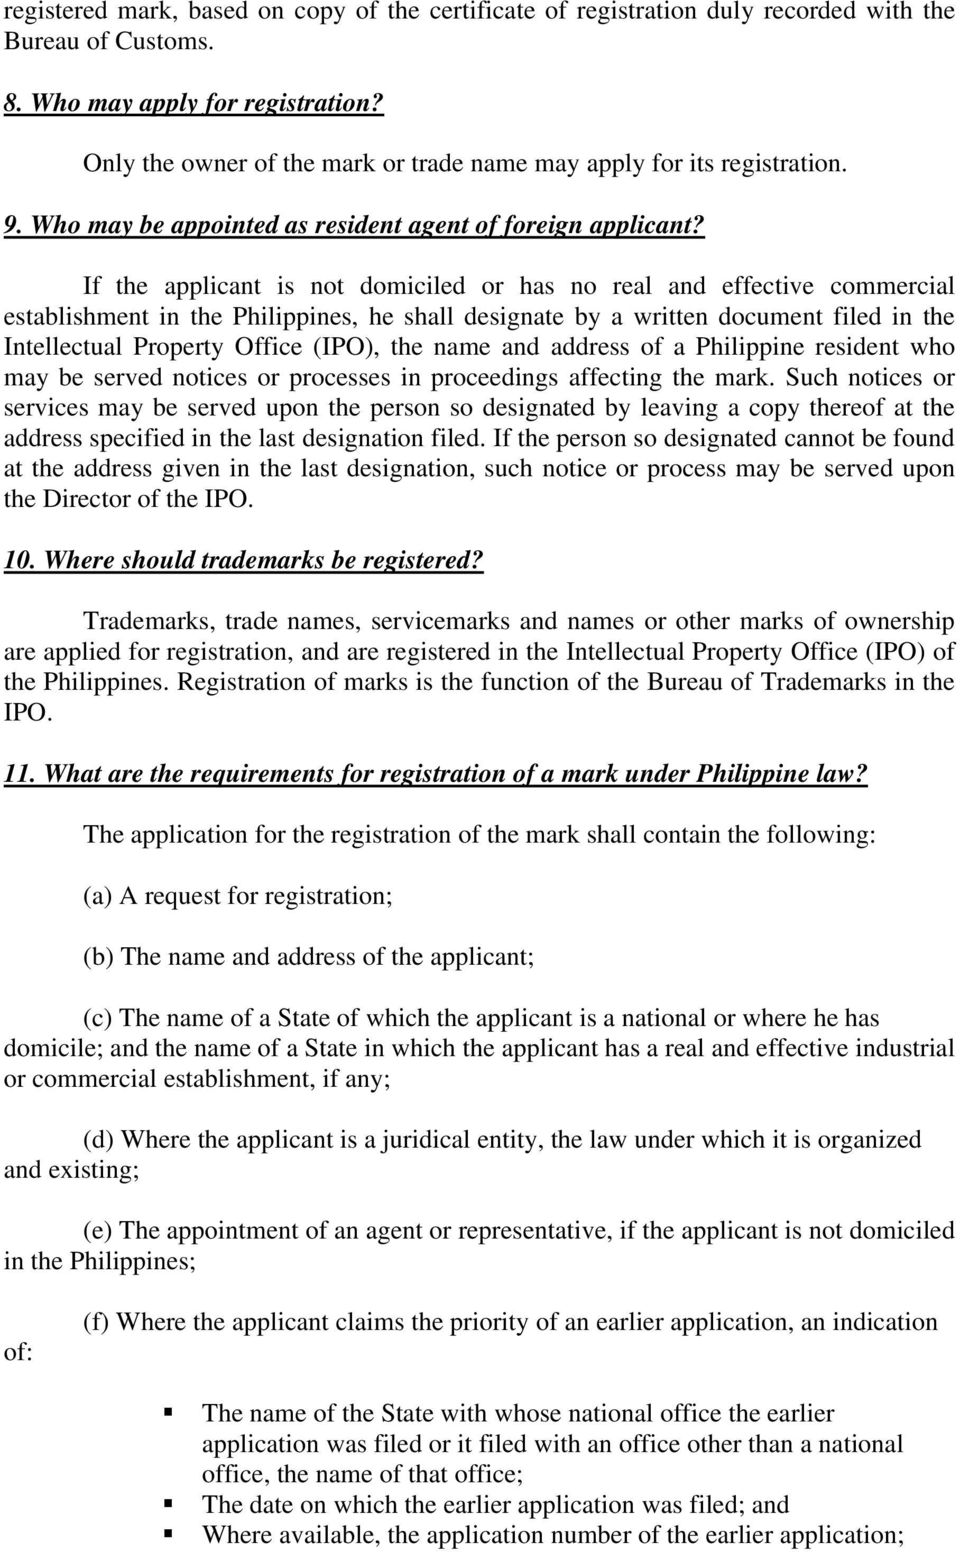 If the applicant is not domiciled or has no real and effective commercial establishment in the Philippines, he shall designate by a written document filed in the Intellectual Property Office (IPO),